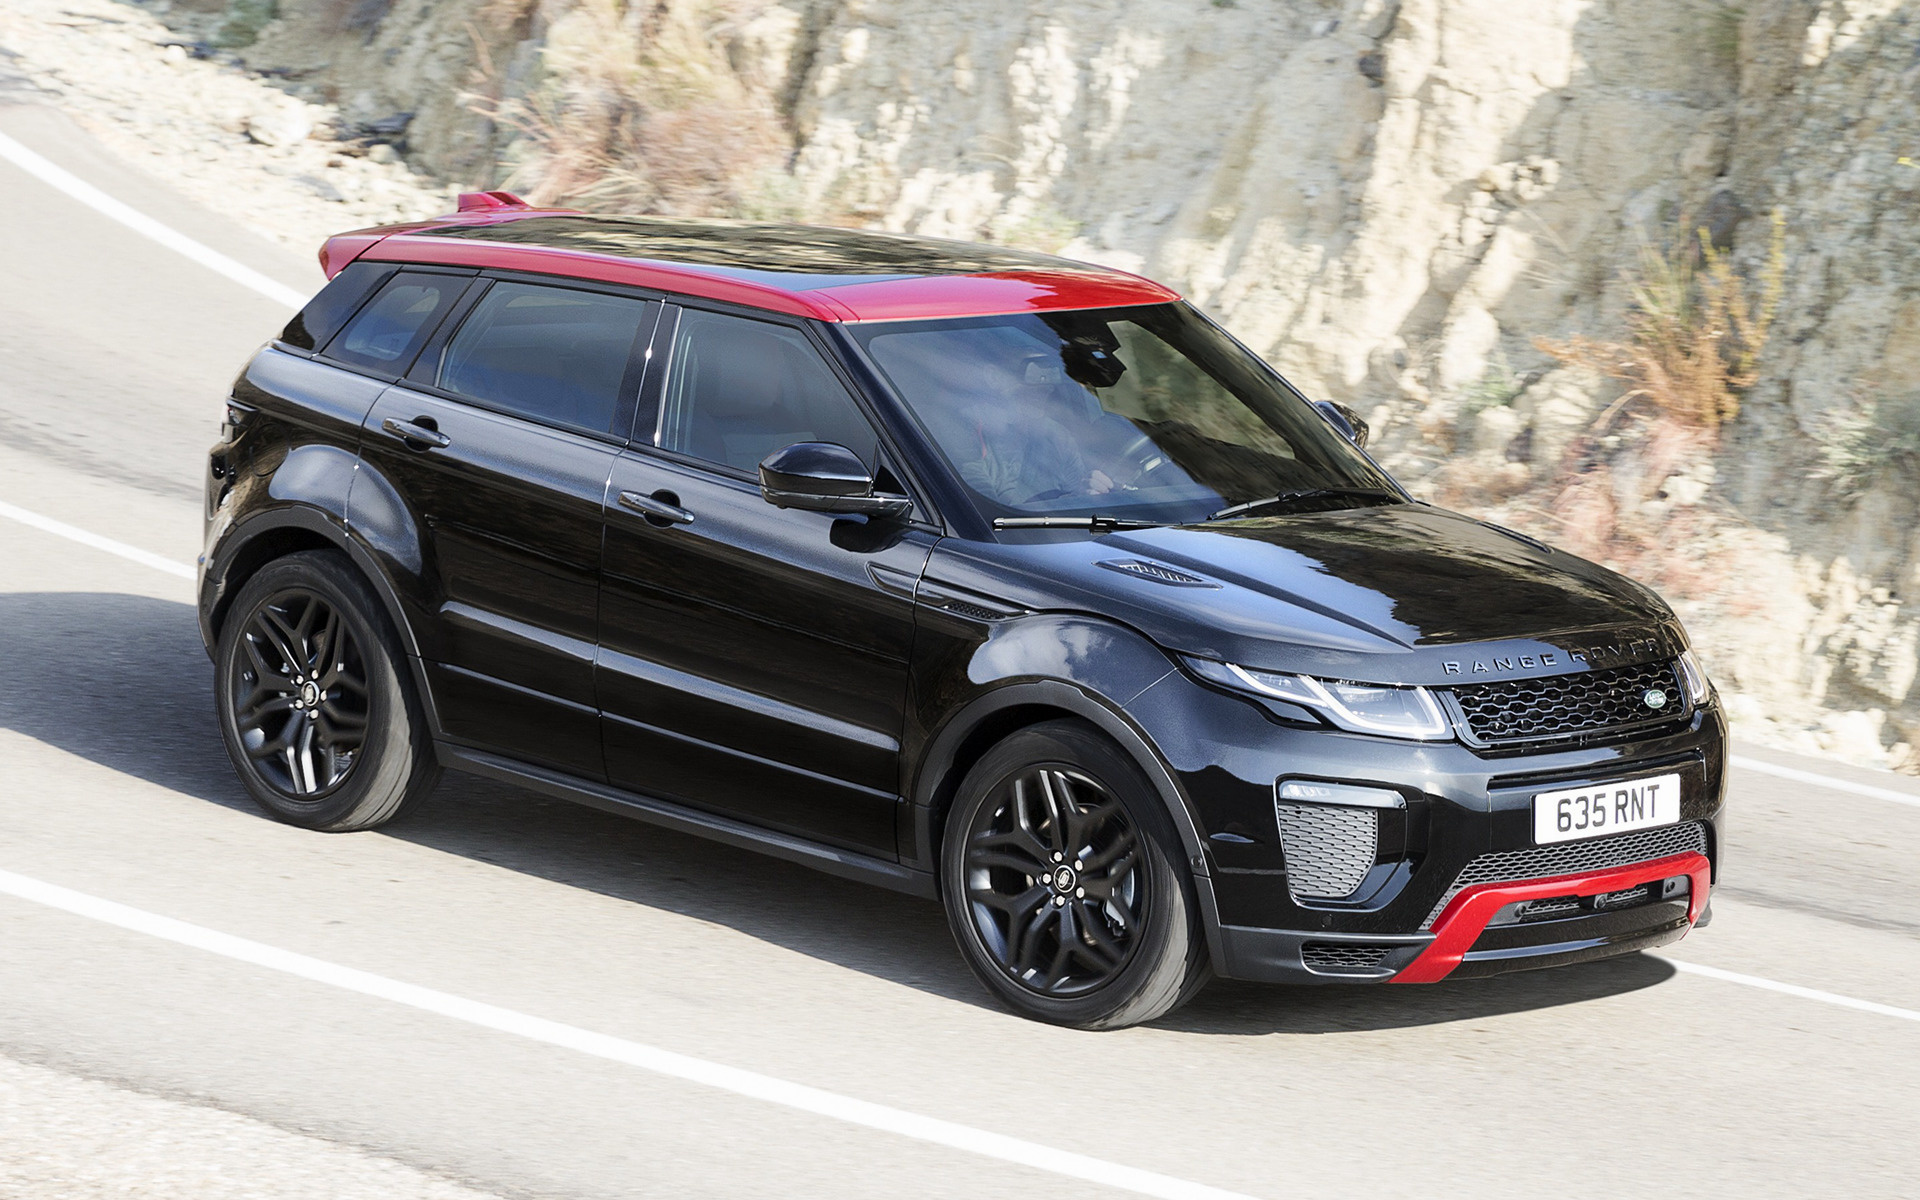 Range Rover Evoke >> 2016 Range Rover Evoque Ember Edition - Wallpapers and HD ...